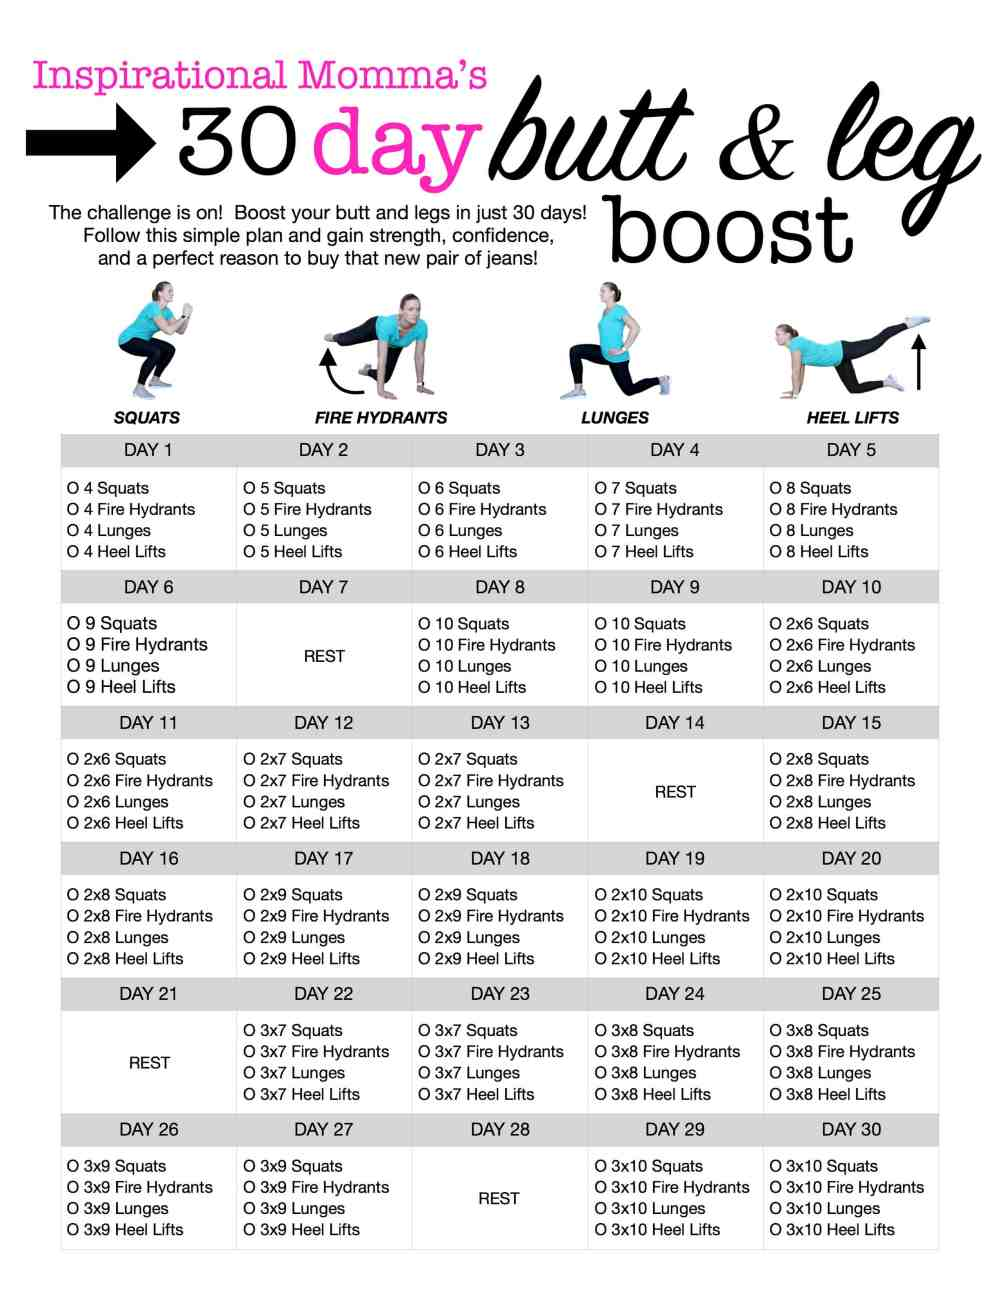 Modest image with regard to 30 day challenge printable